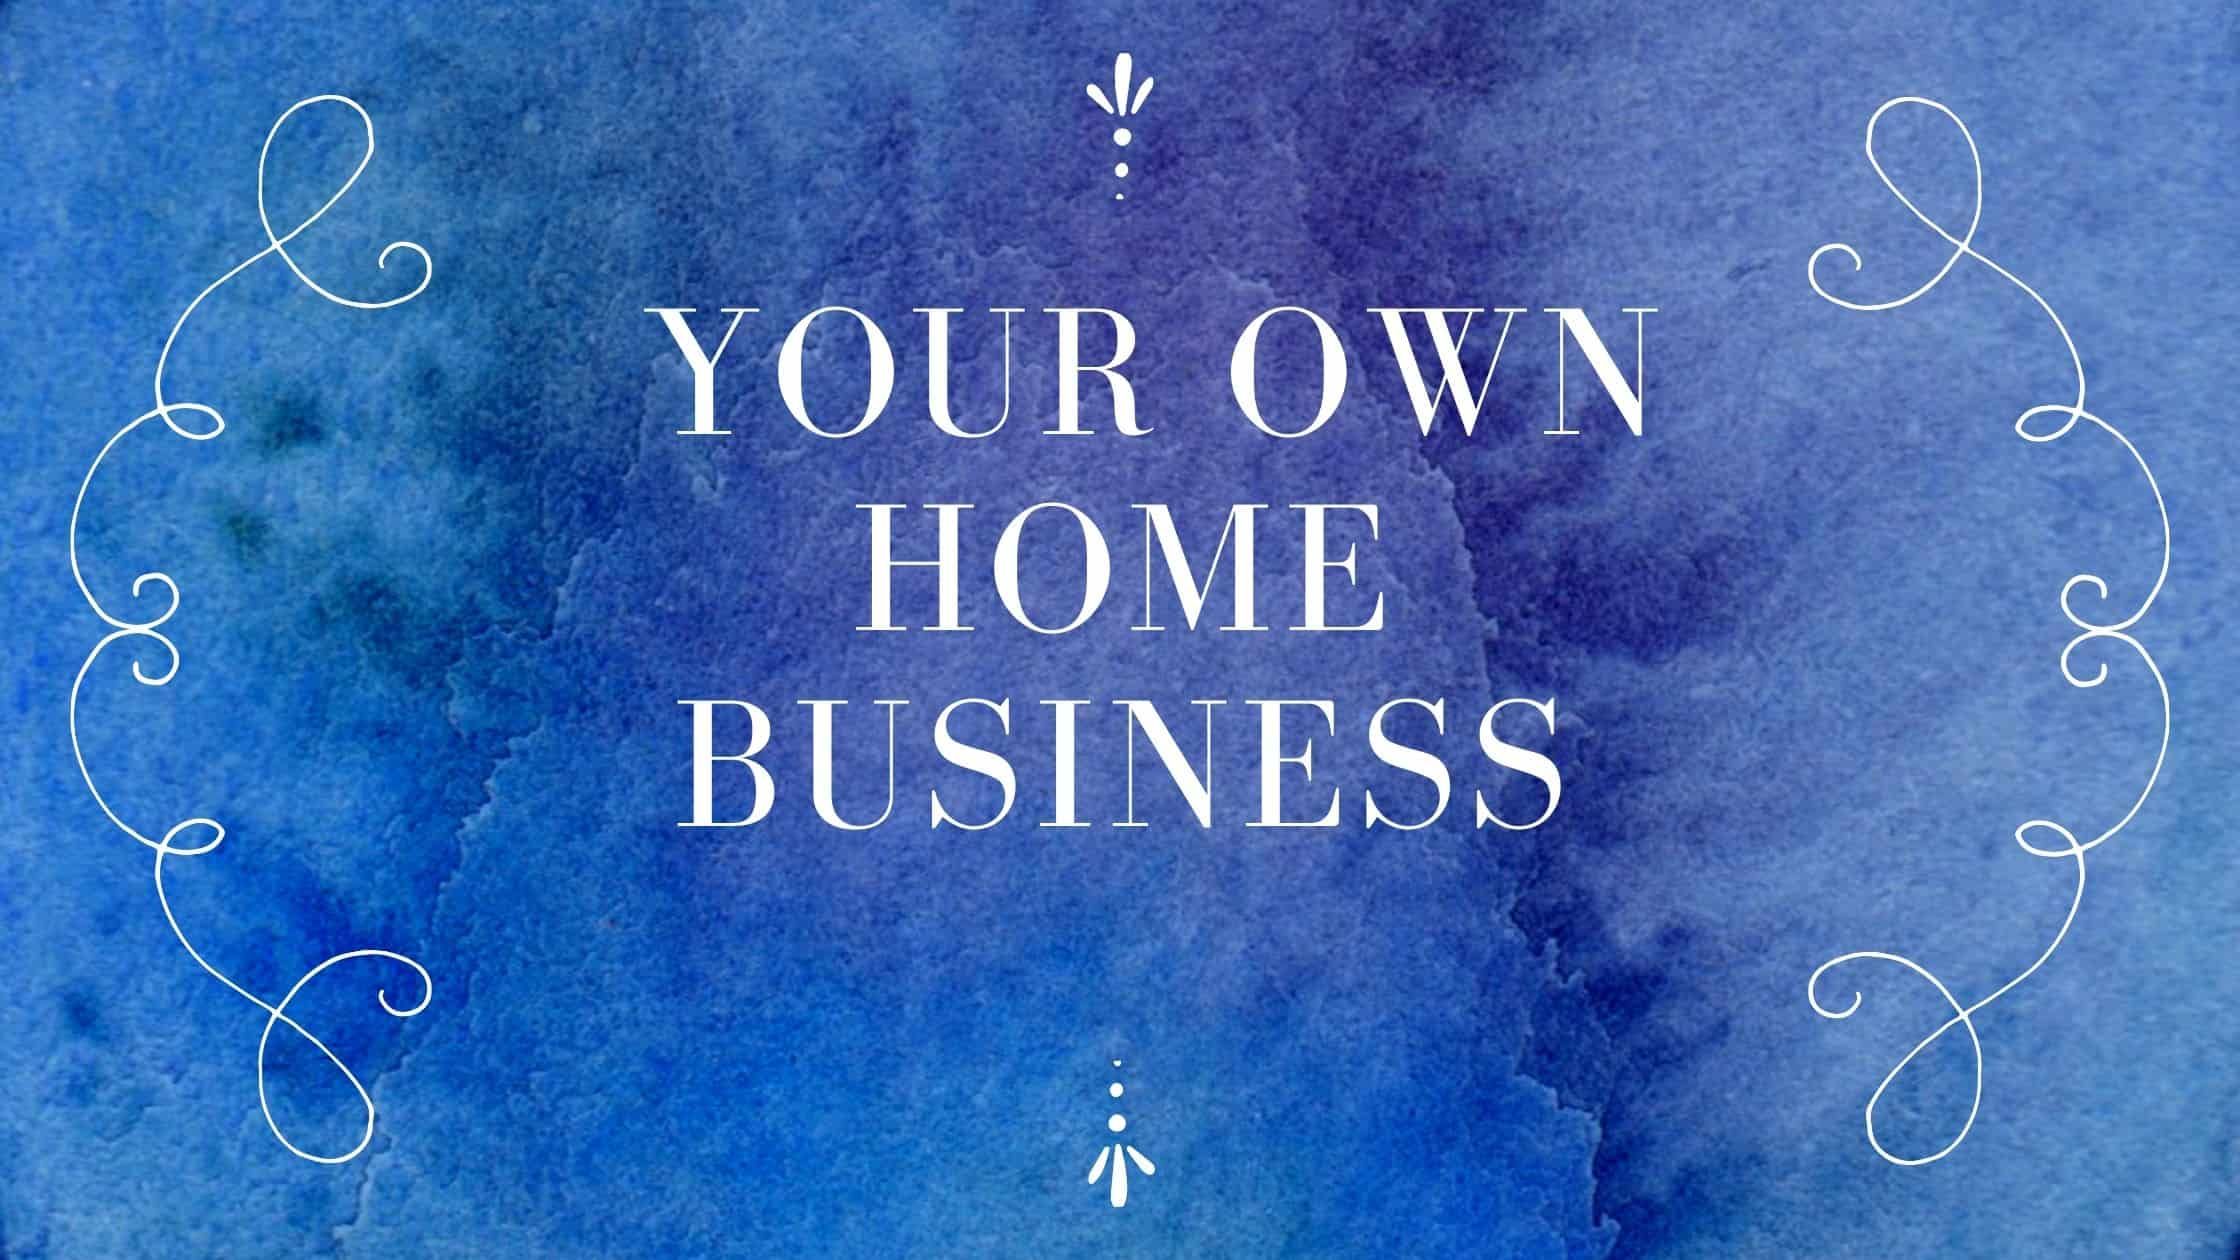 Your Own Home Business